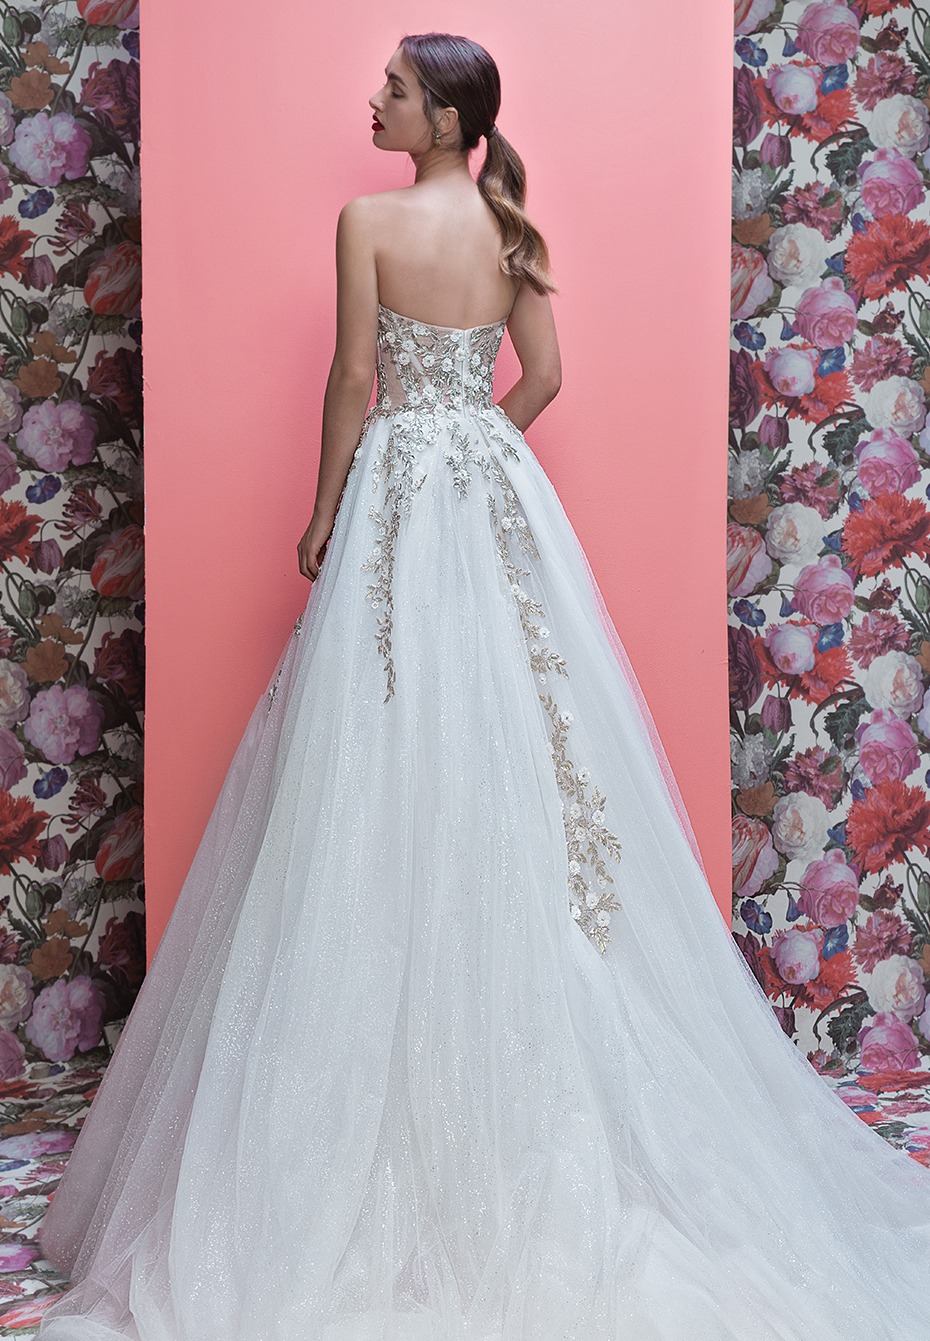 Glam Wedding Dresses From Galia Lahav And The Cakes That Match Them